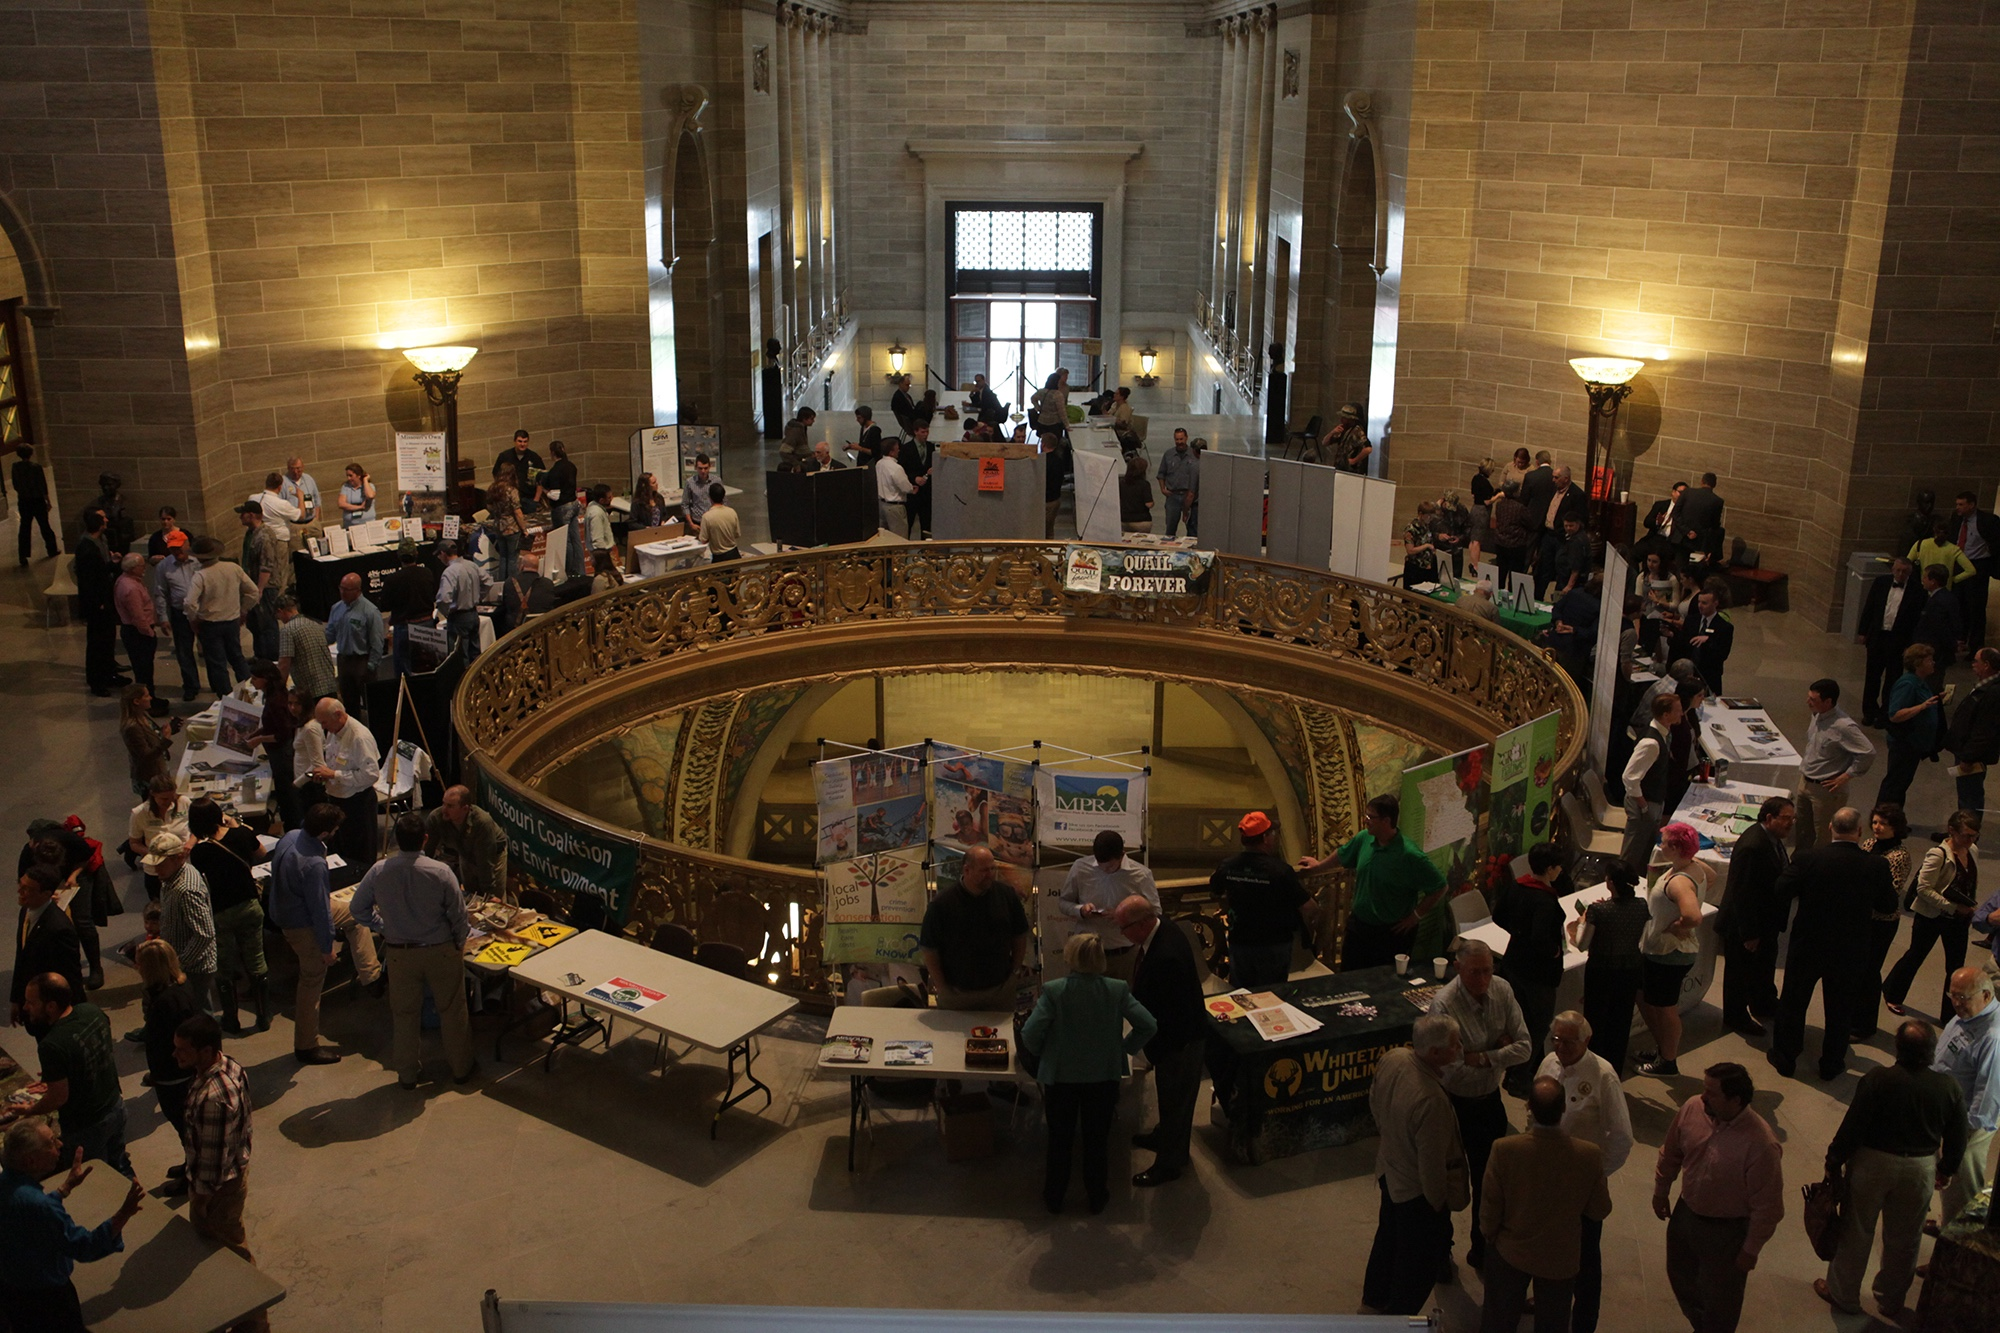 On April 12, Conservation Day at the Capitol will bring together hundreds of conservationists at the State Capitol from around Missouri.